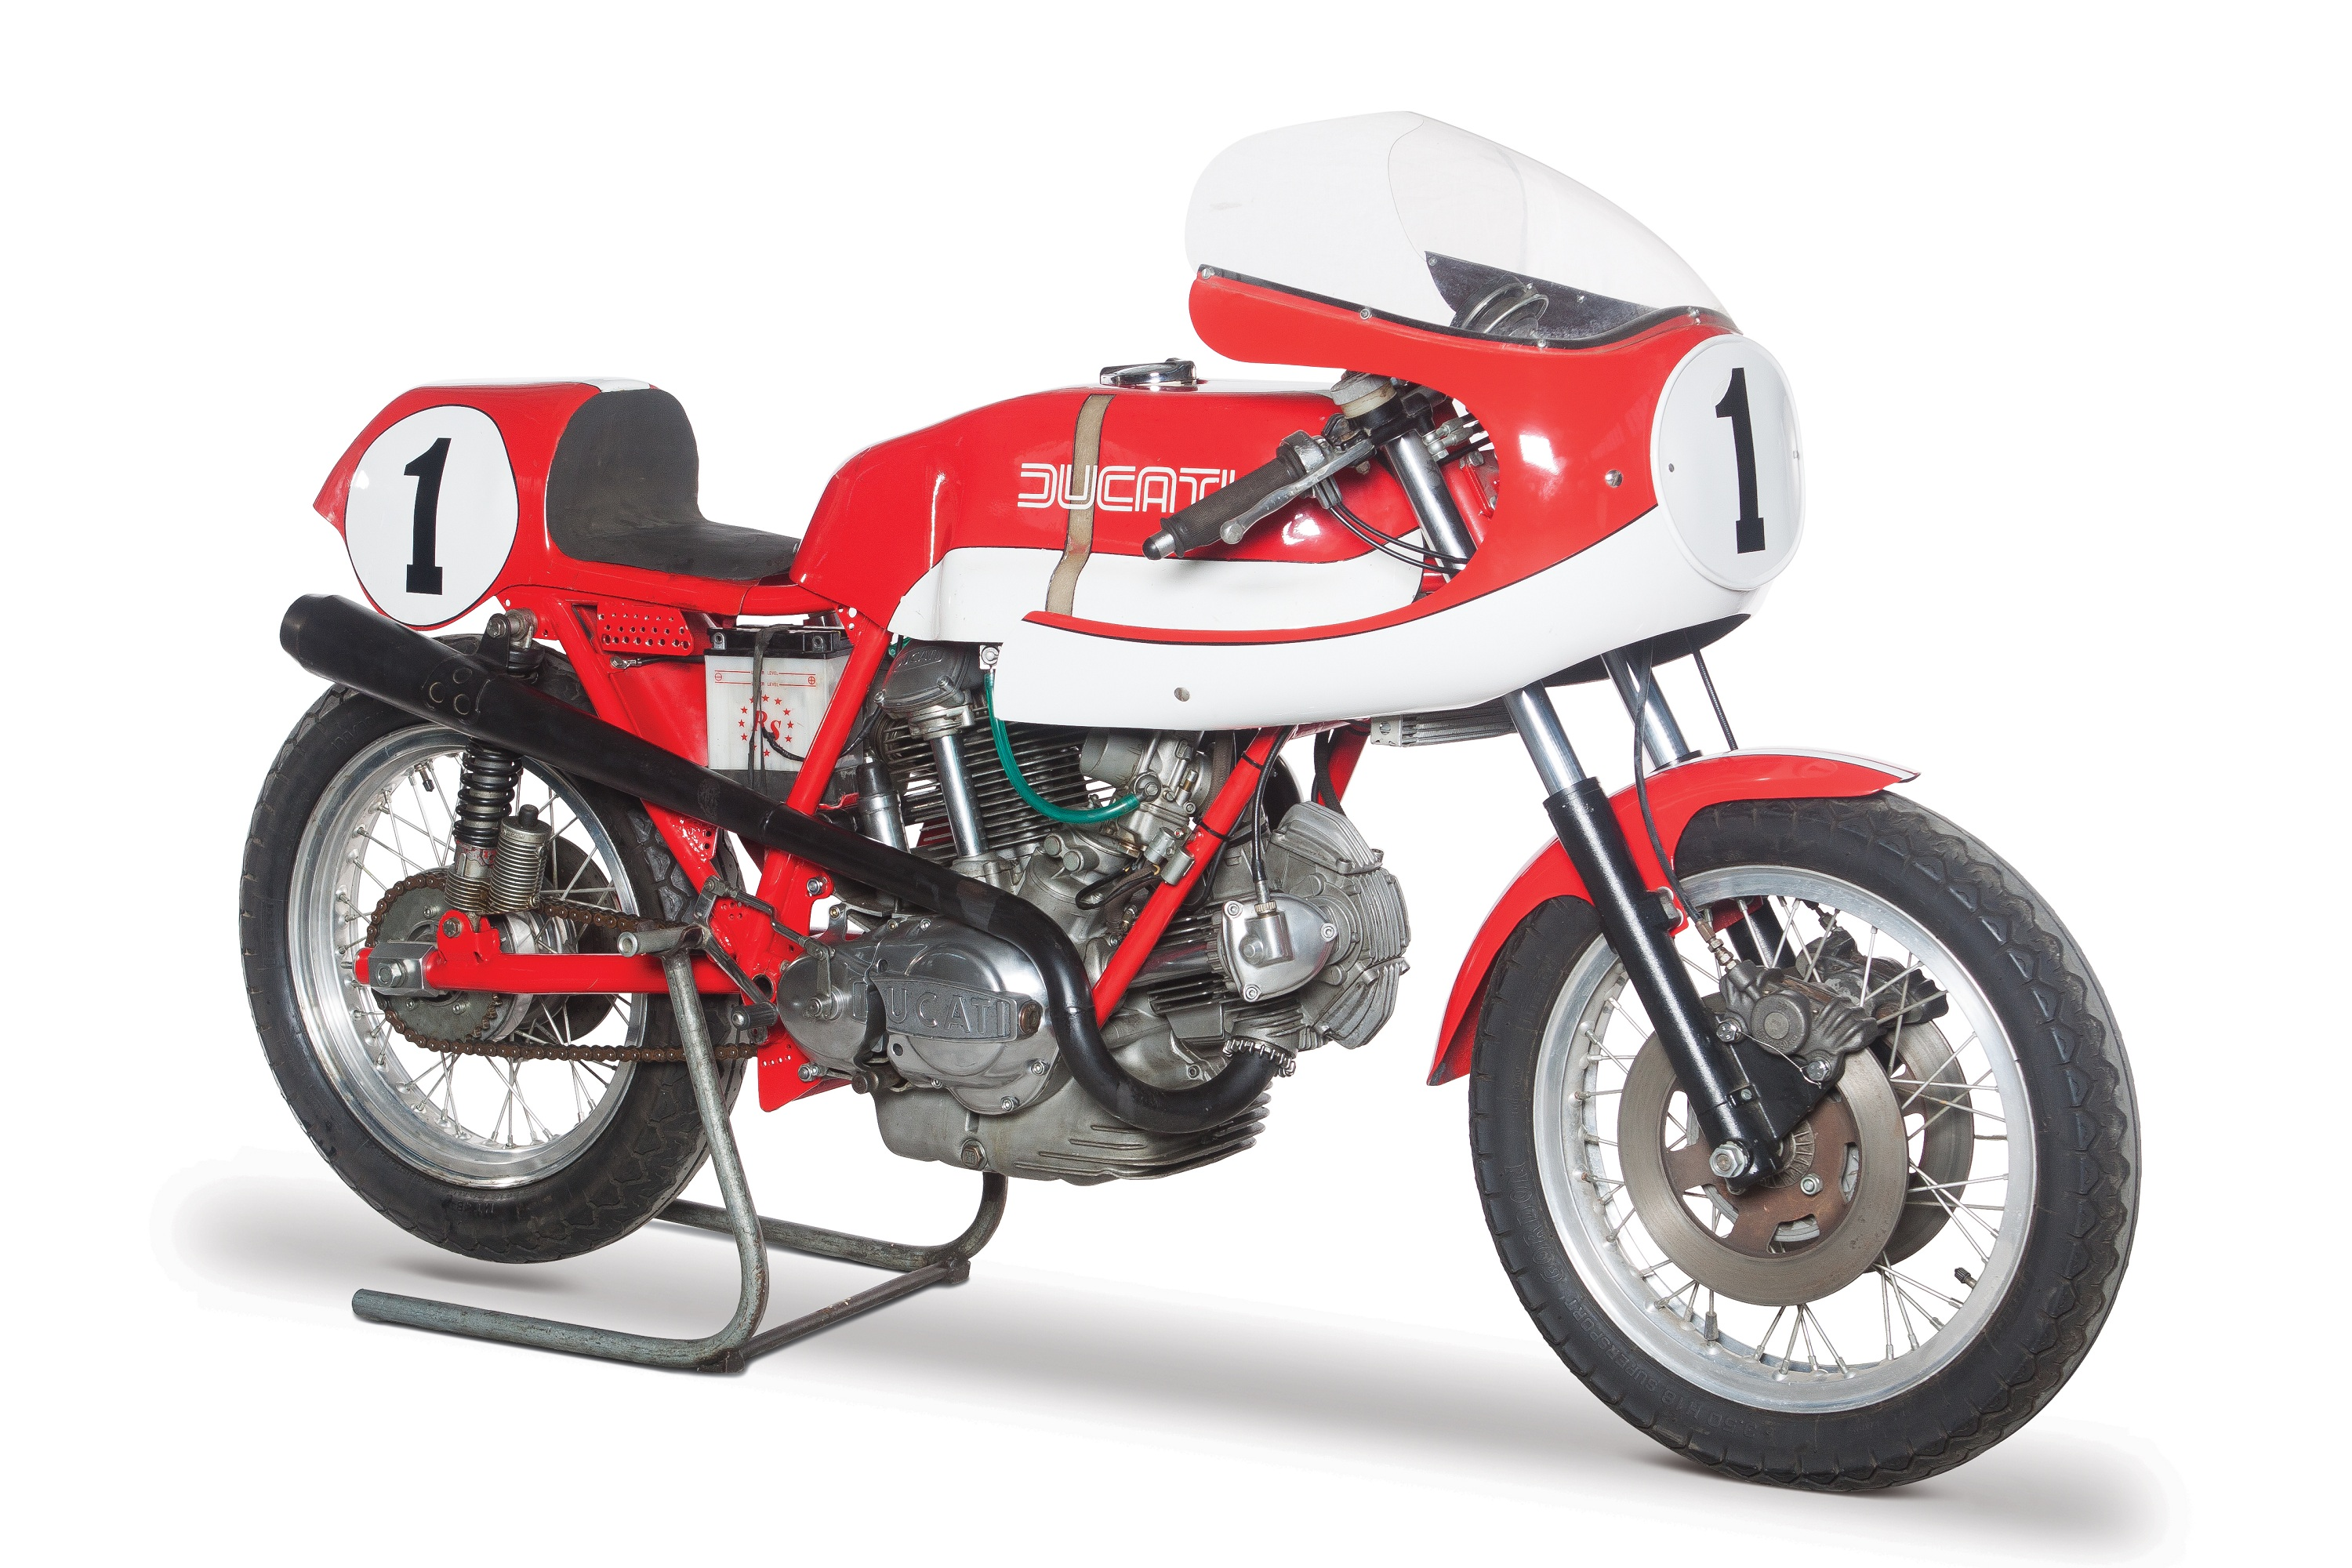 1974 ducati 750 ss corsa review gallery top speed. Black Bedroom Furniture Sets. Home Design Ideas